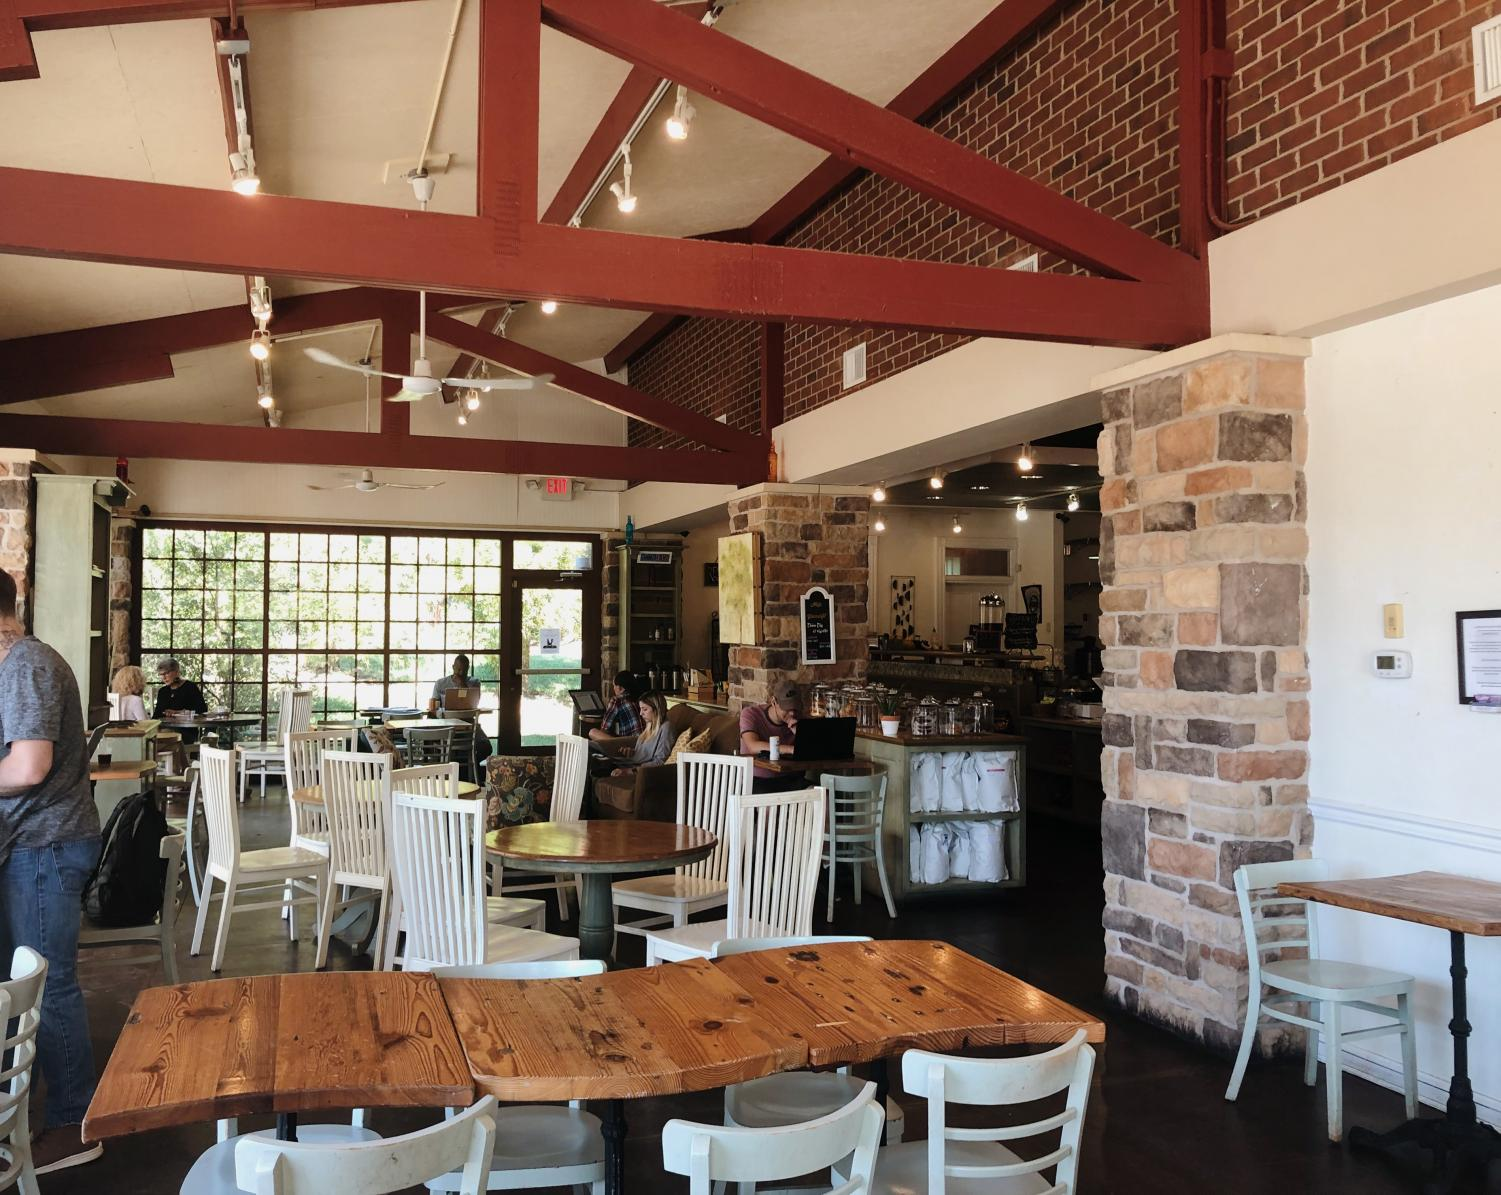 The Urban Farmhouse Cafe offers a bright and lively scene for all patrons.